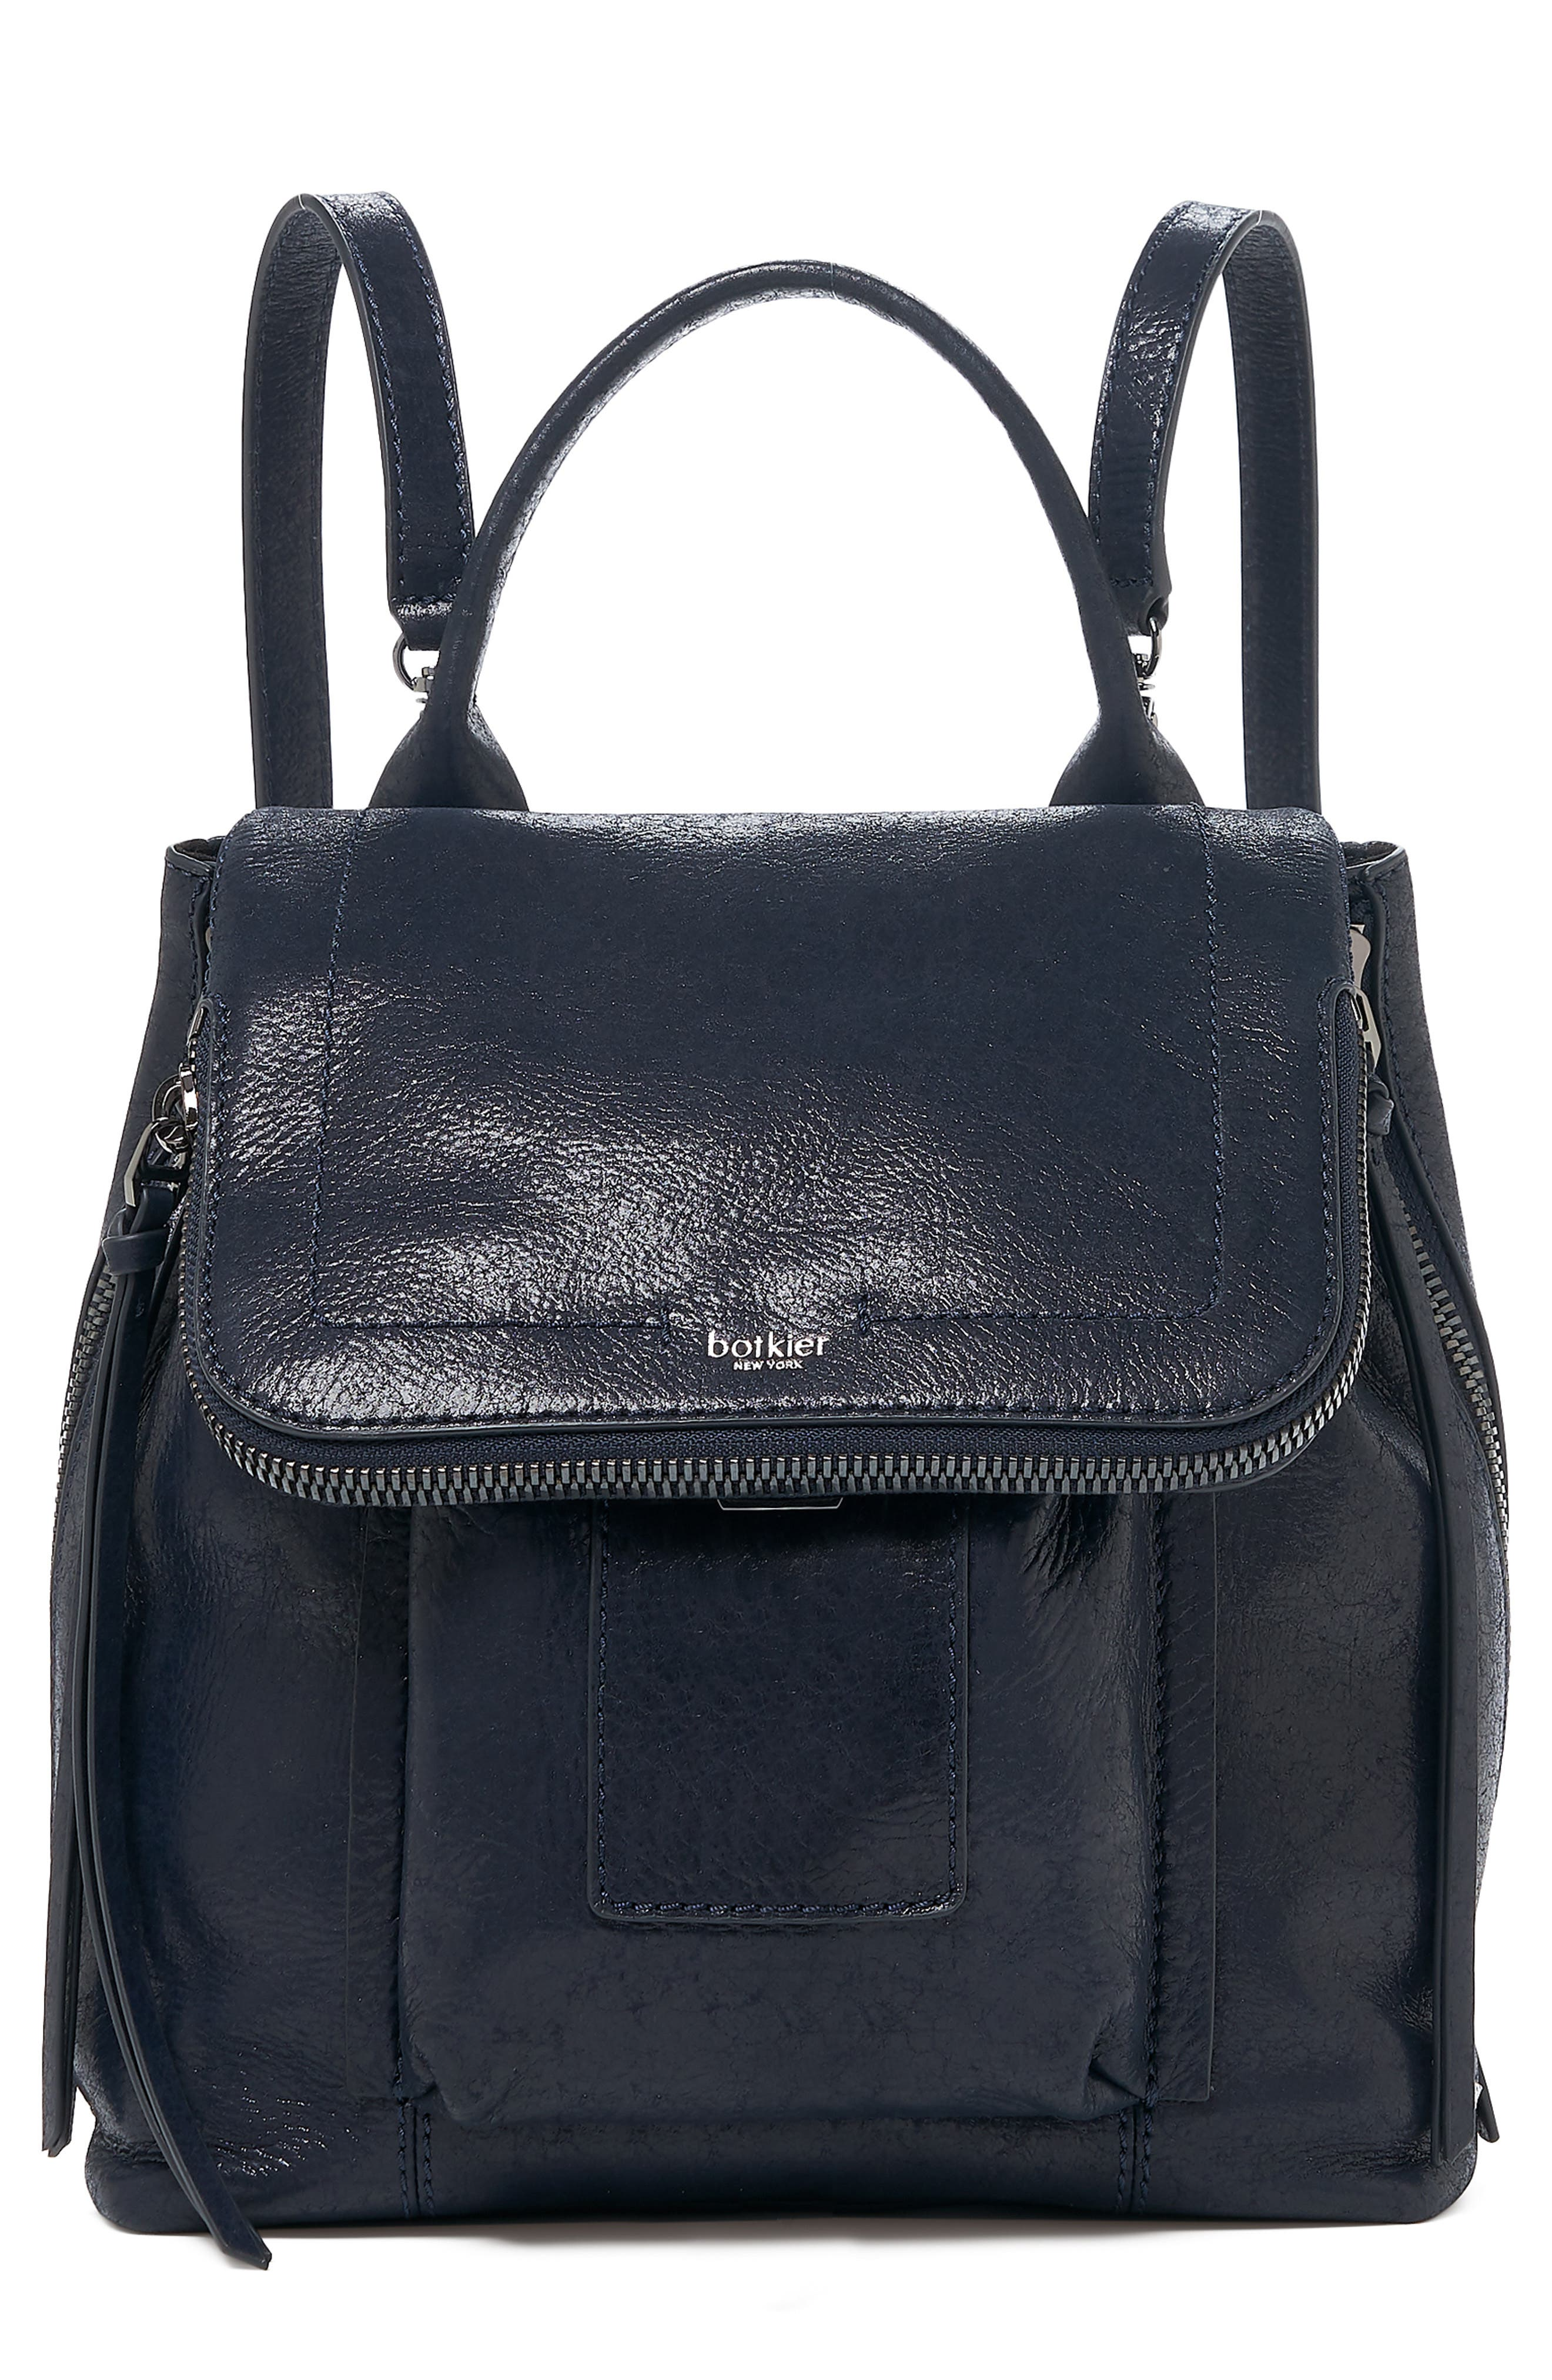 Warren Leather Backpack - Blue in Navy